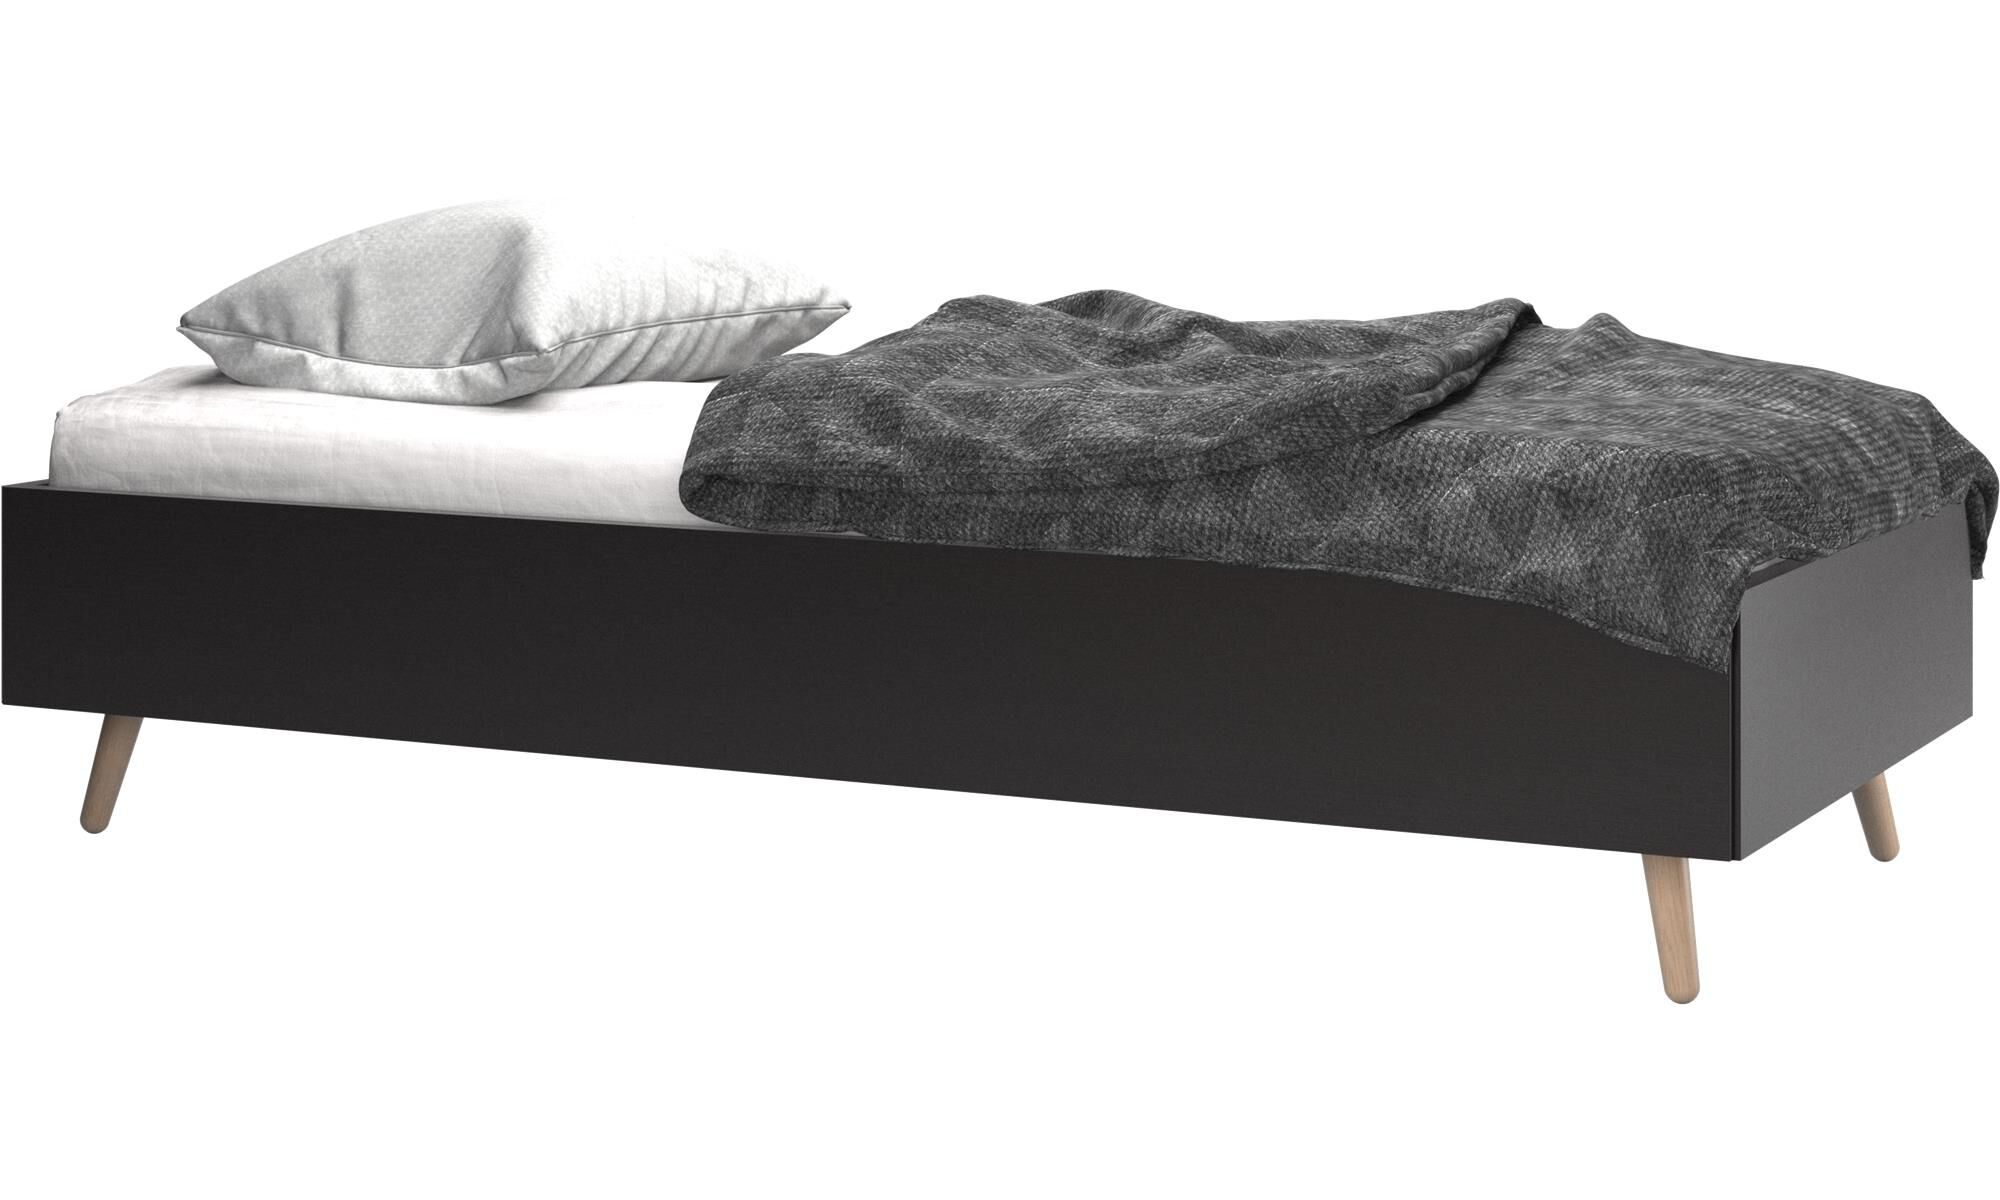 Beds   Lugano Bed, Excl. Mattress   Black   Oak